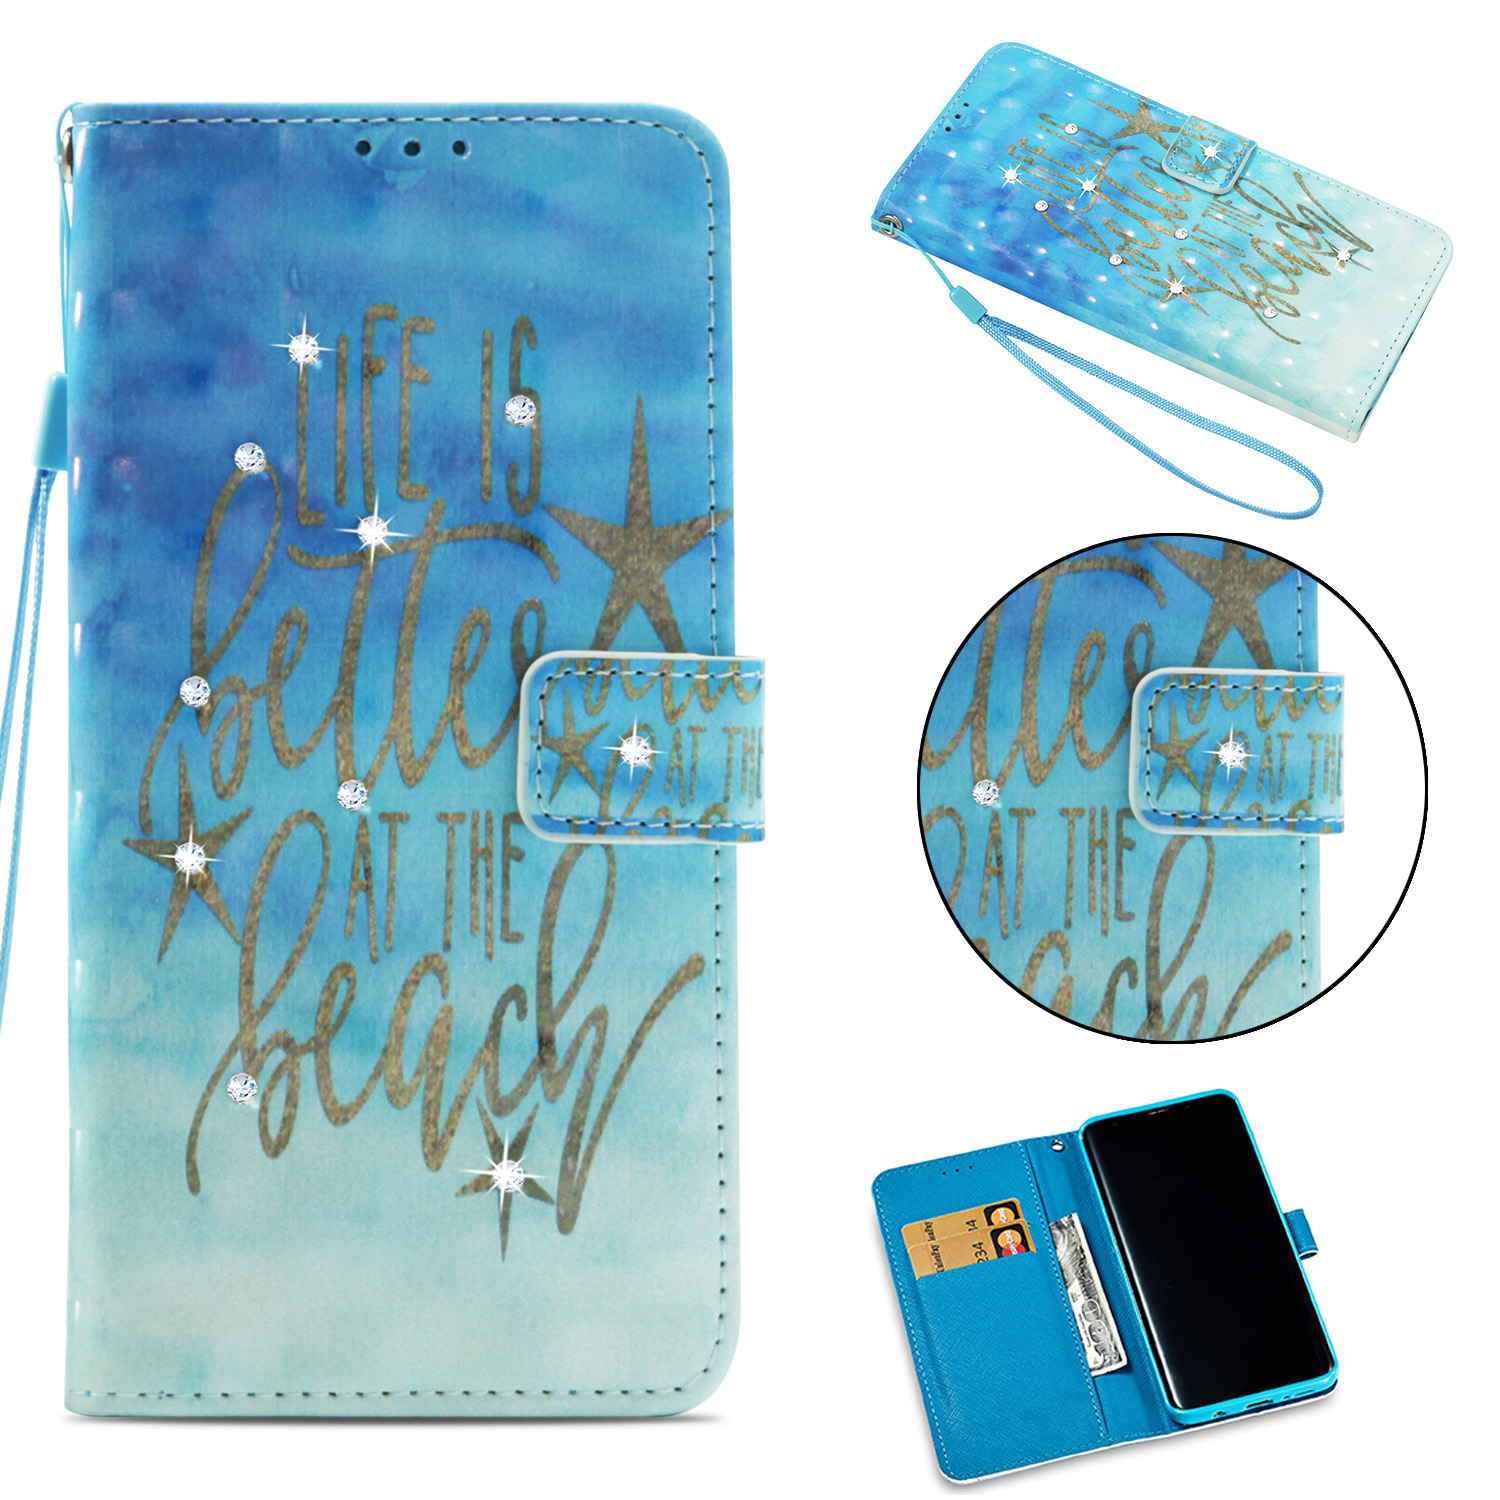 Galaxy S9 Folio Case, Allytech PU Leather Thin Lightweight Diamond Embossed Stand Full Protective Wrist Strap Cards Pocket Bumper Shockproof Wallet Case Cover for Samsung Galaxy S9, Gold Star